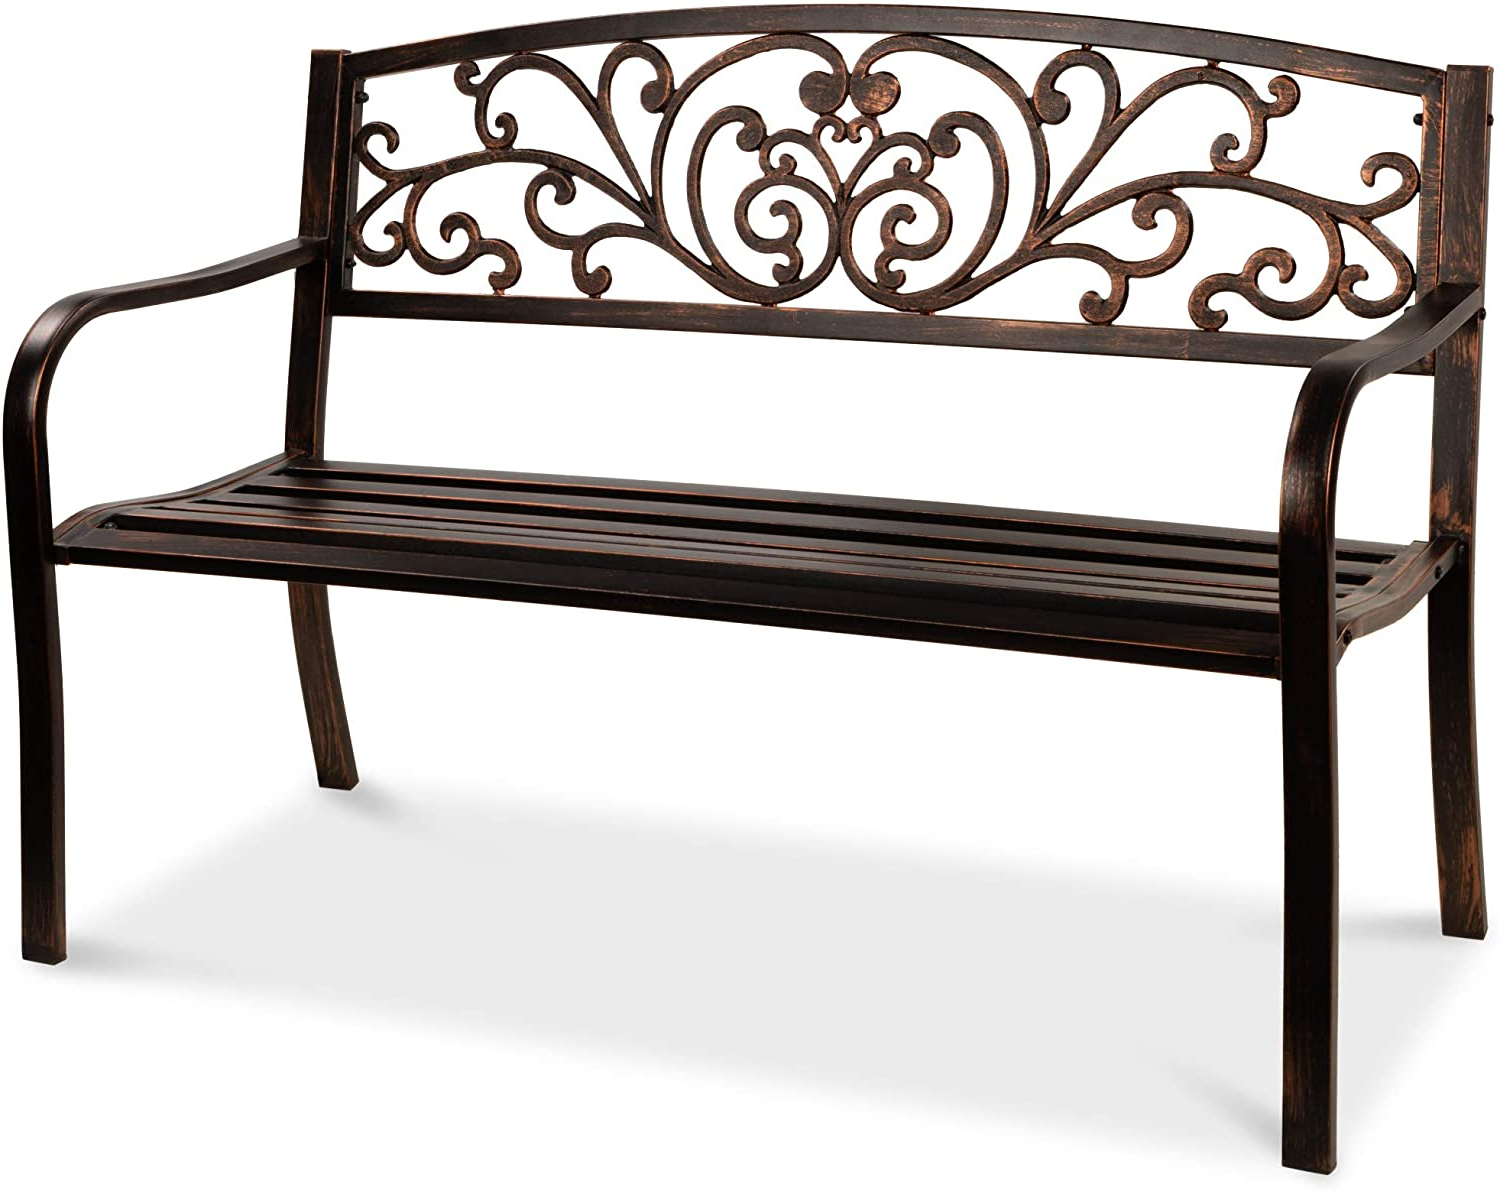 Trendy Best Choice Products 50in Steel Garden Bench For Outdoor, Park, Yard, Patio Furniture Chair W/floral Design Backrest, Slatted Seat – Brown Within Blooming Iron Garden Benches (View 11 of 30)